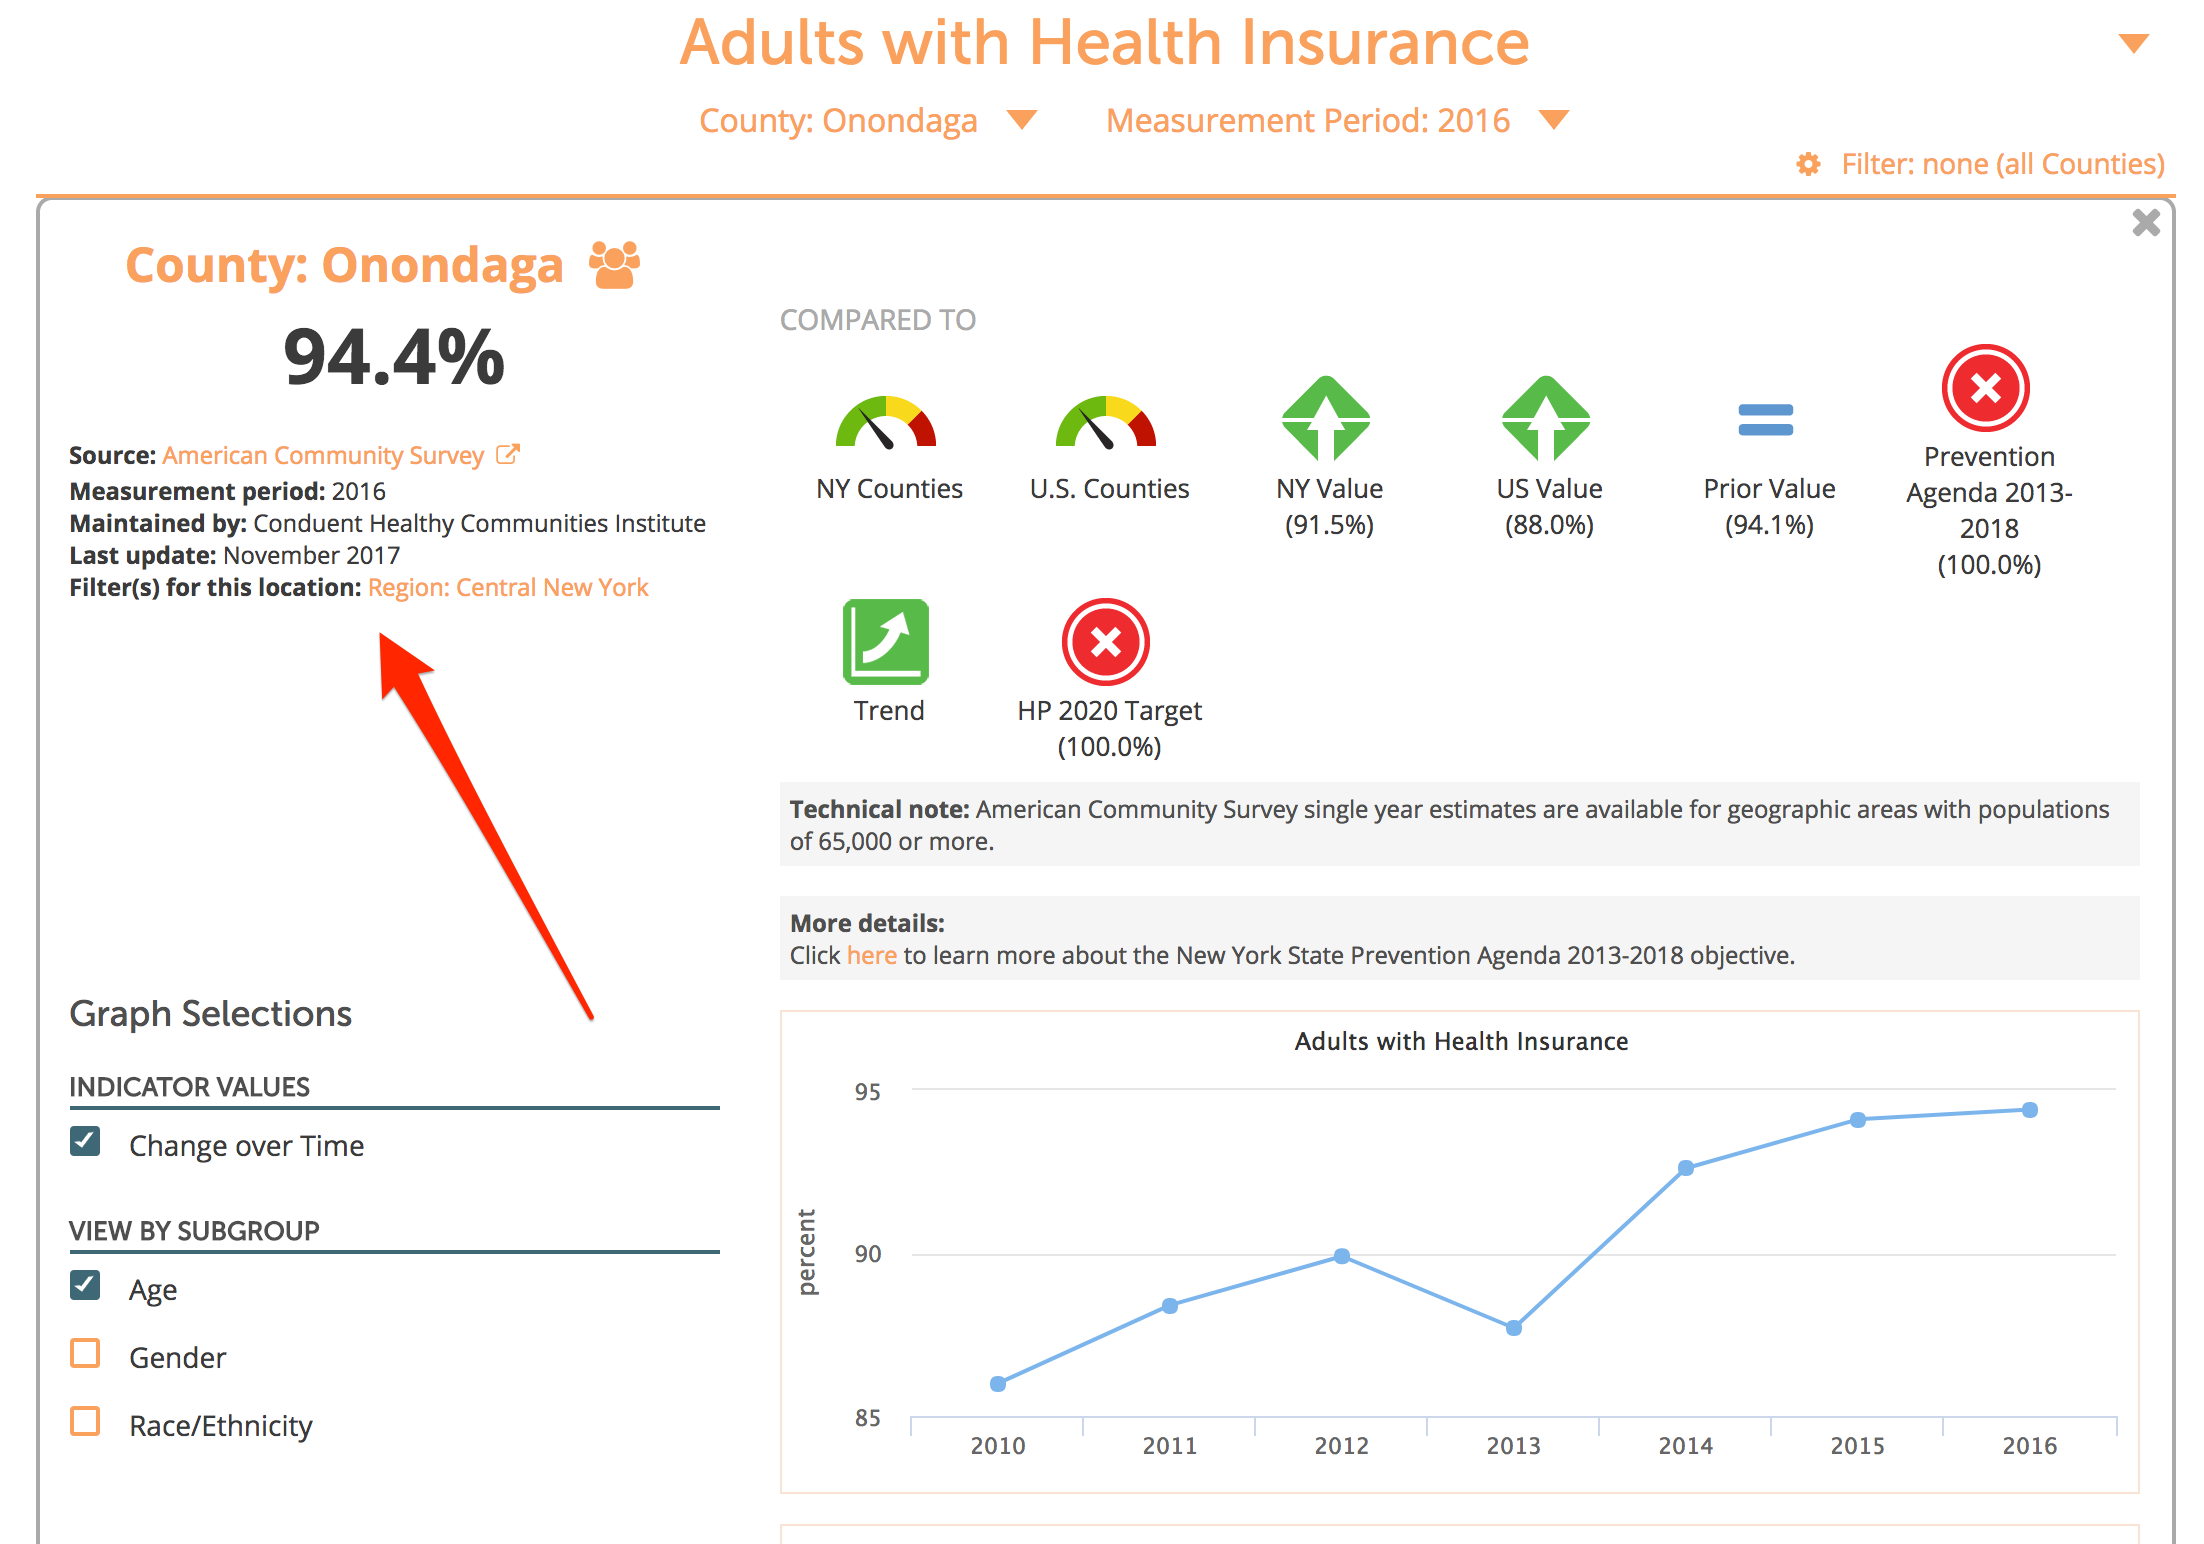 HealtheCNY____Indicators____Adults_with_Health_Insurance.png